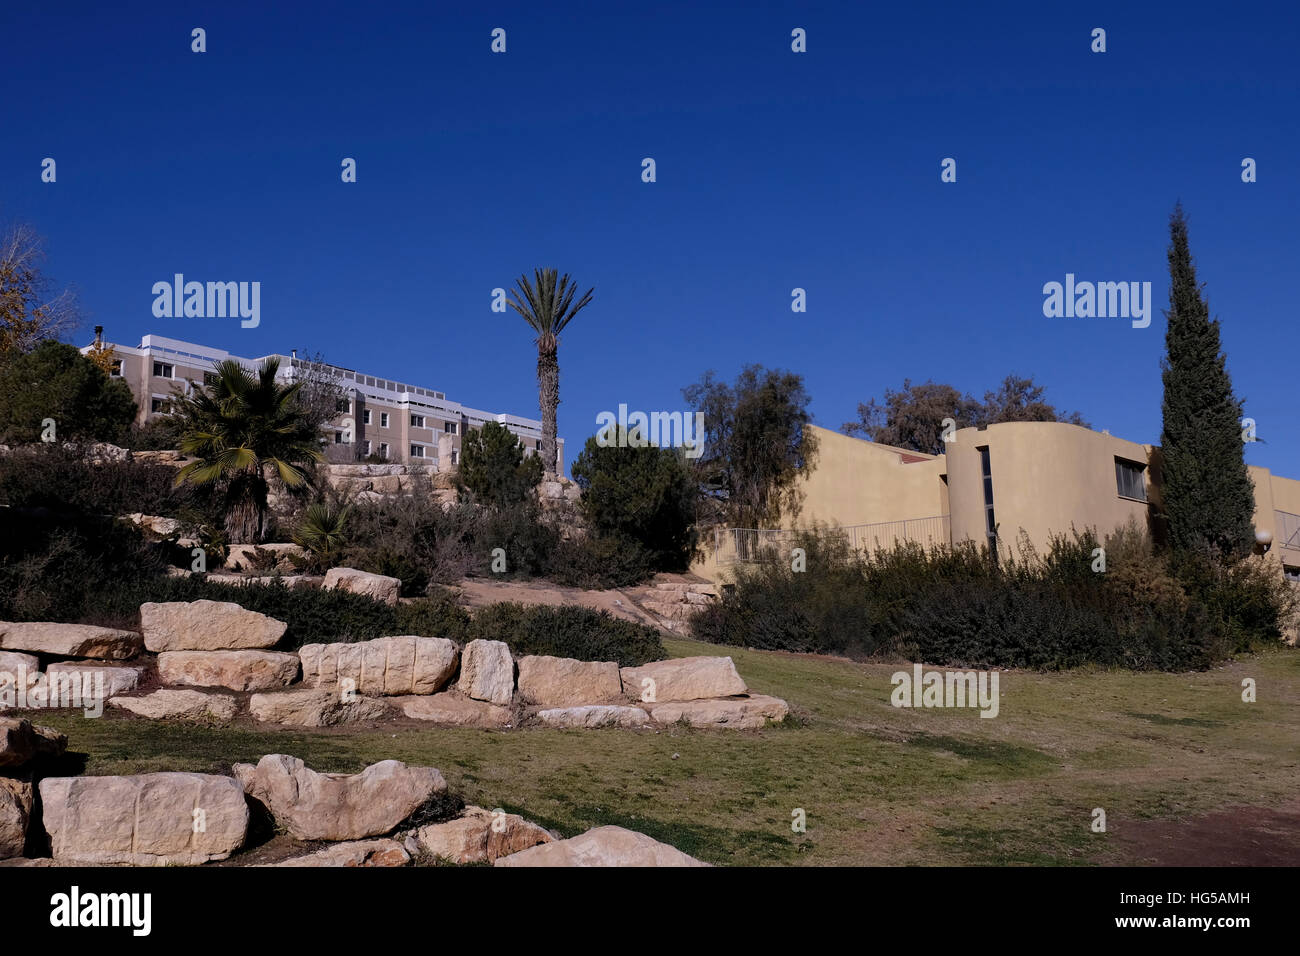 Residential buildings in Mitzpe Ramon a town in the Negev desert on 03 January 2016.  Mitzpe Ramon comprises Israel's - Stock Image